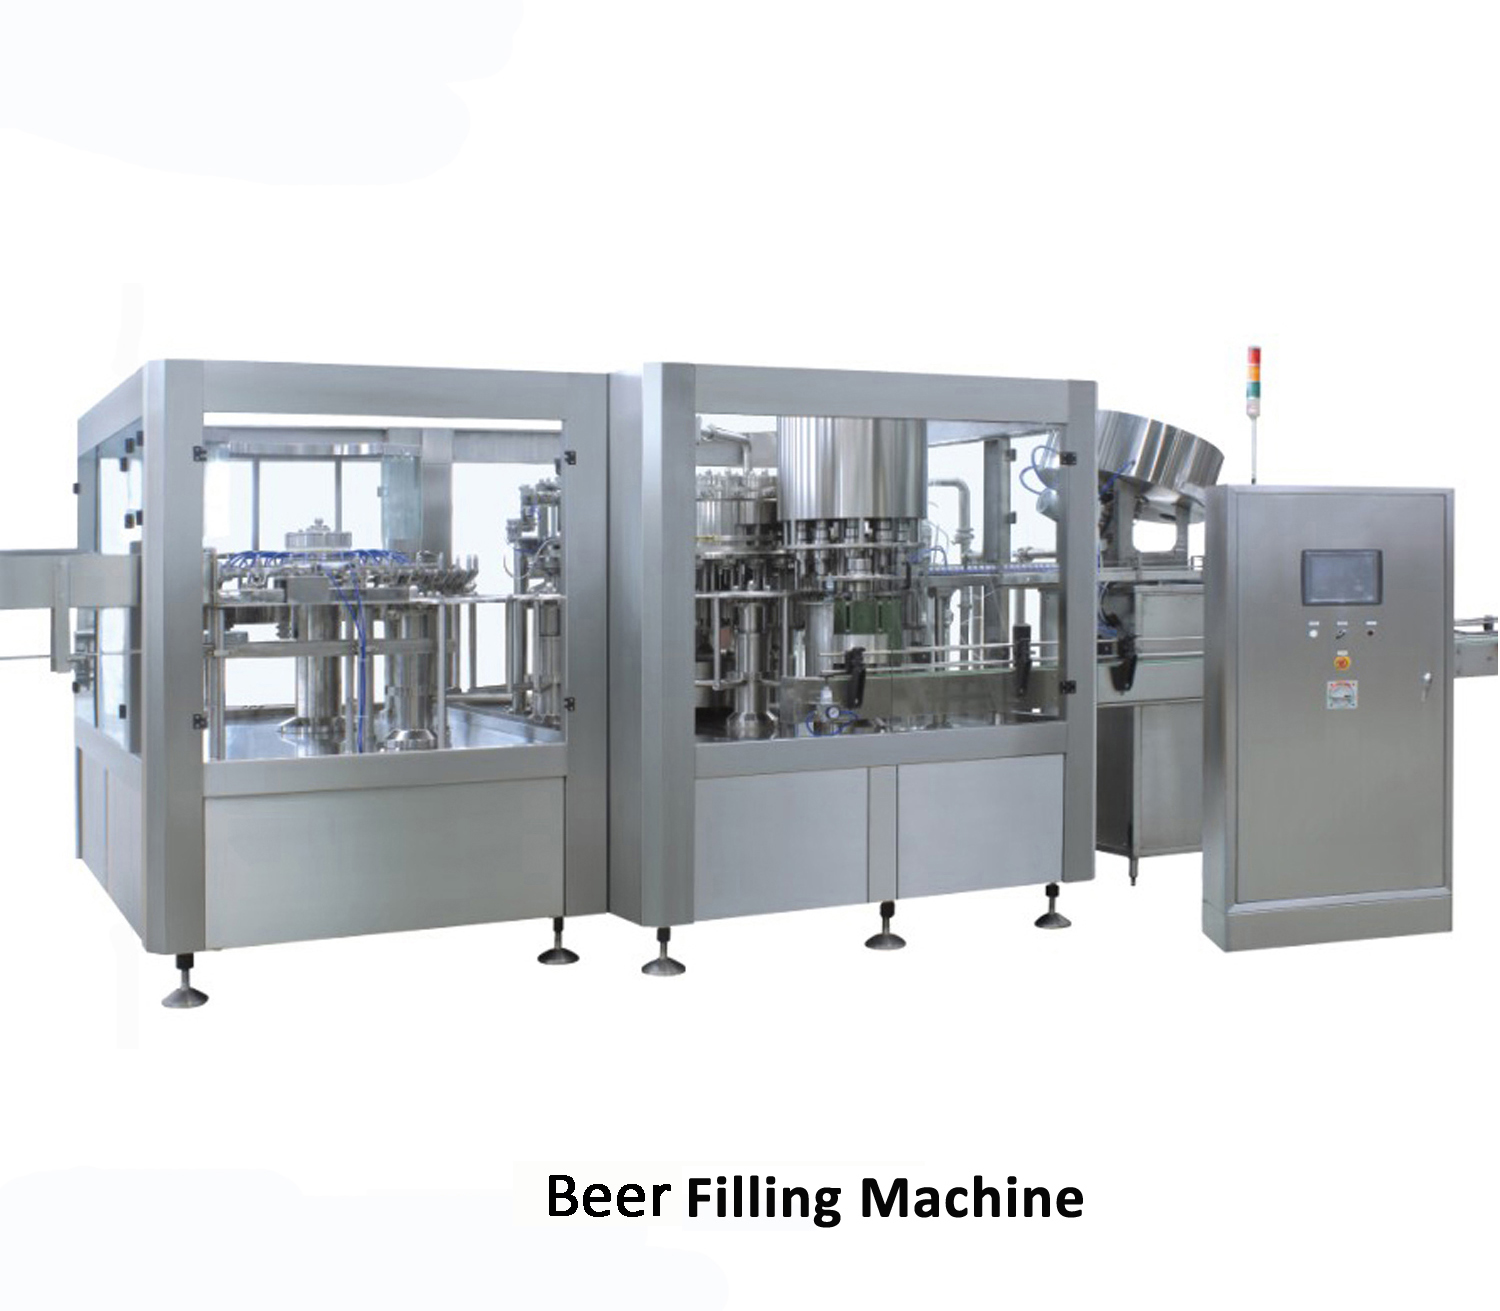 beer filling machine.jpg